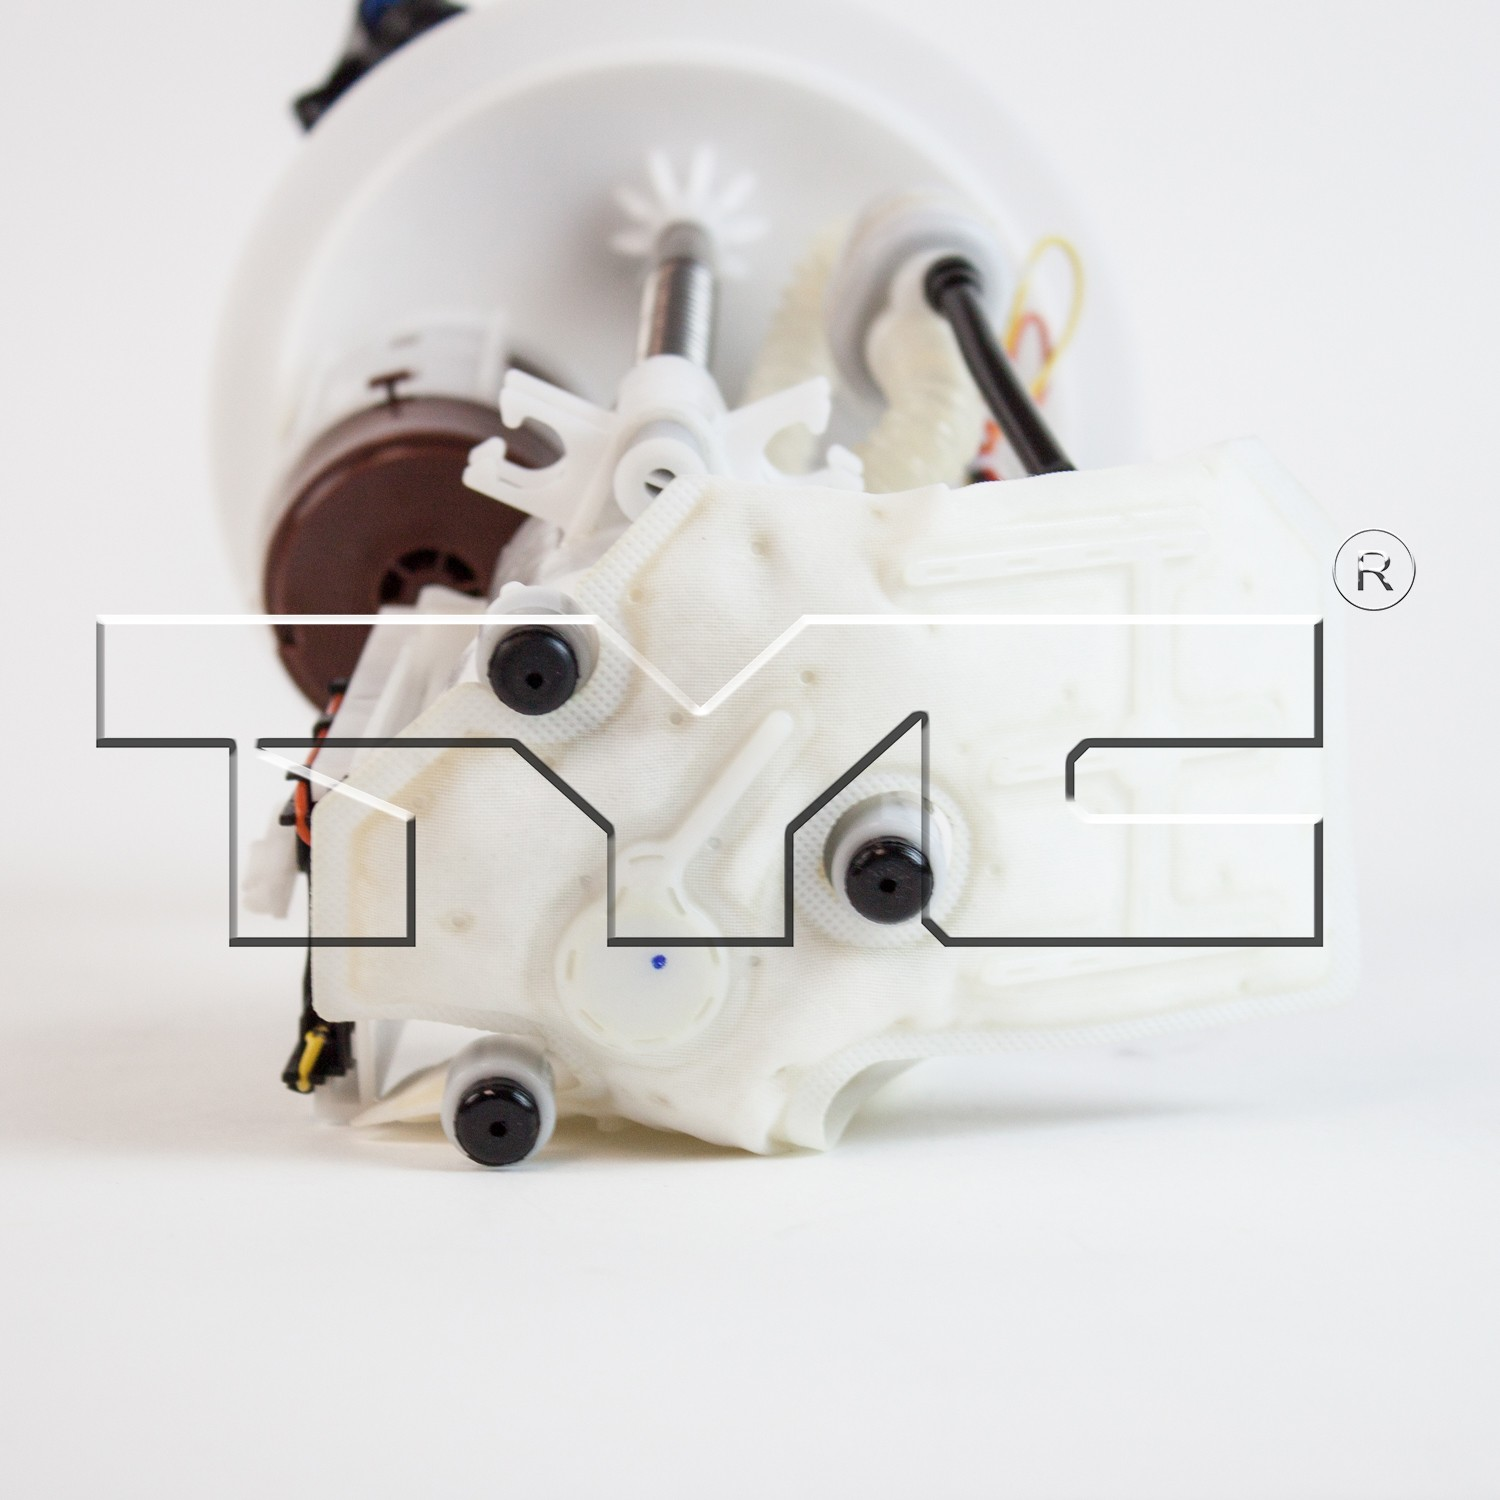 hight resolution of 2004 mercury mountaineer fuel pump module assembly ty 150271